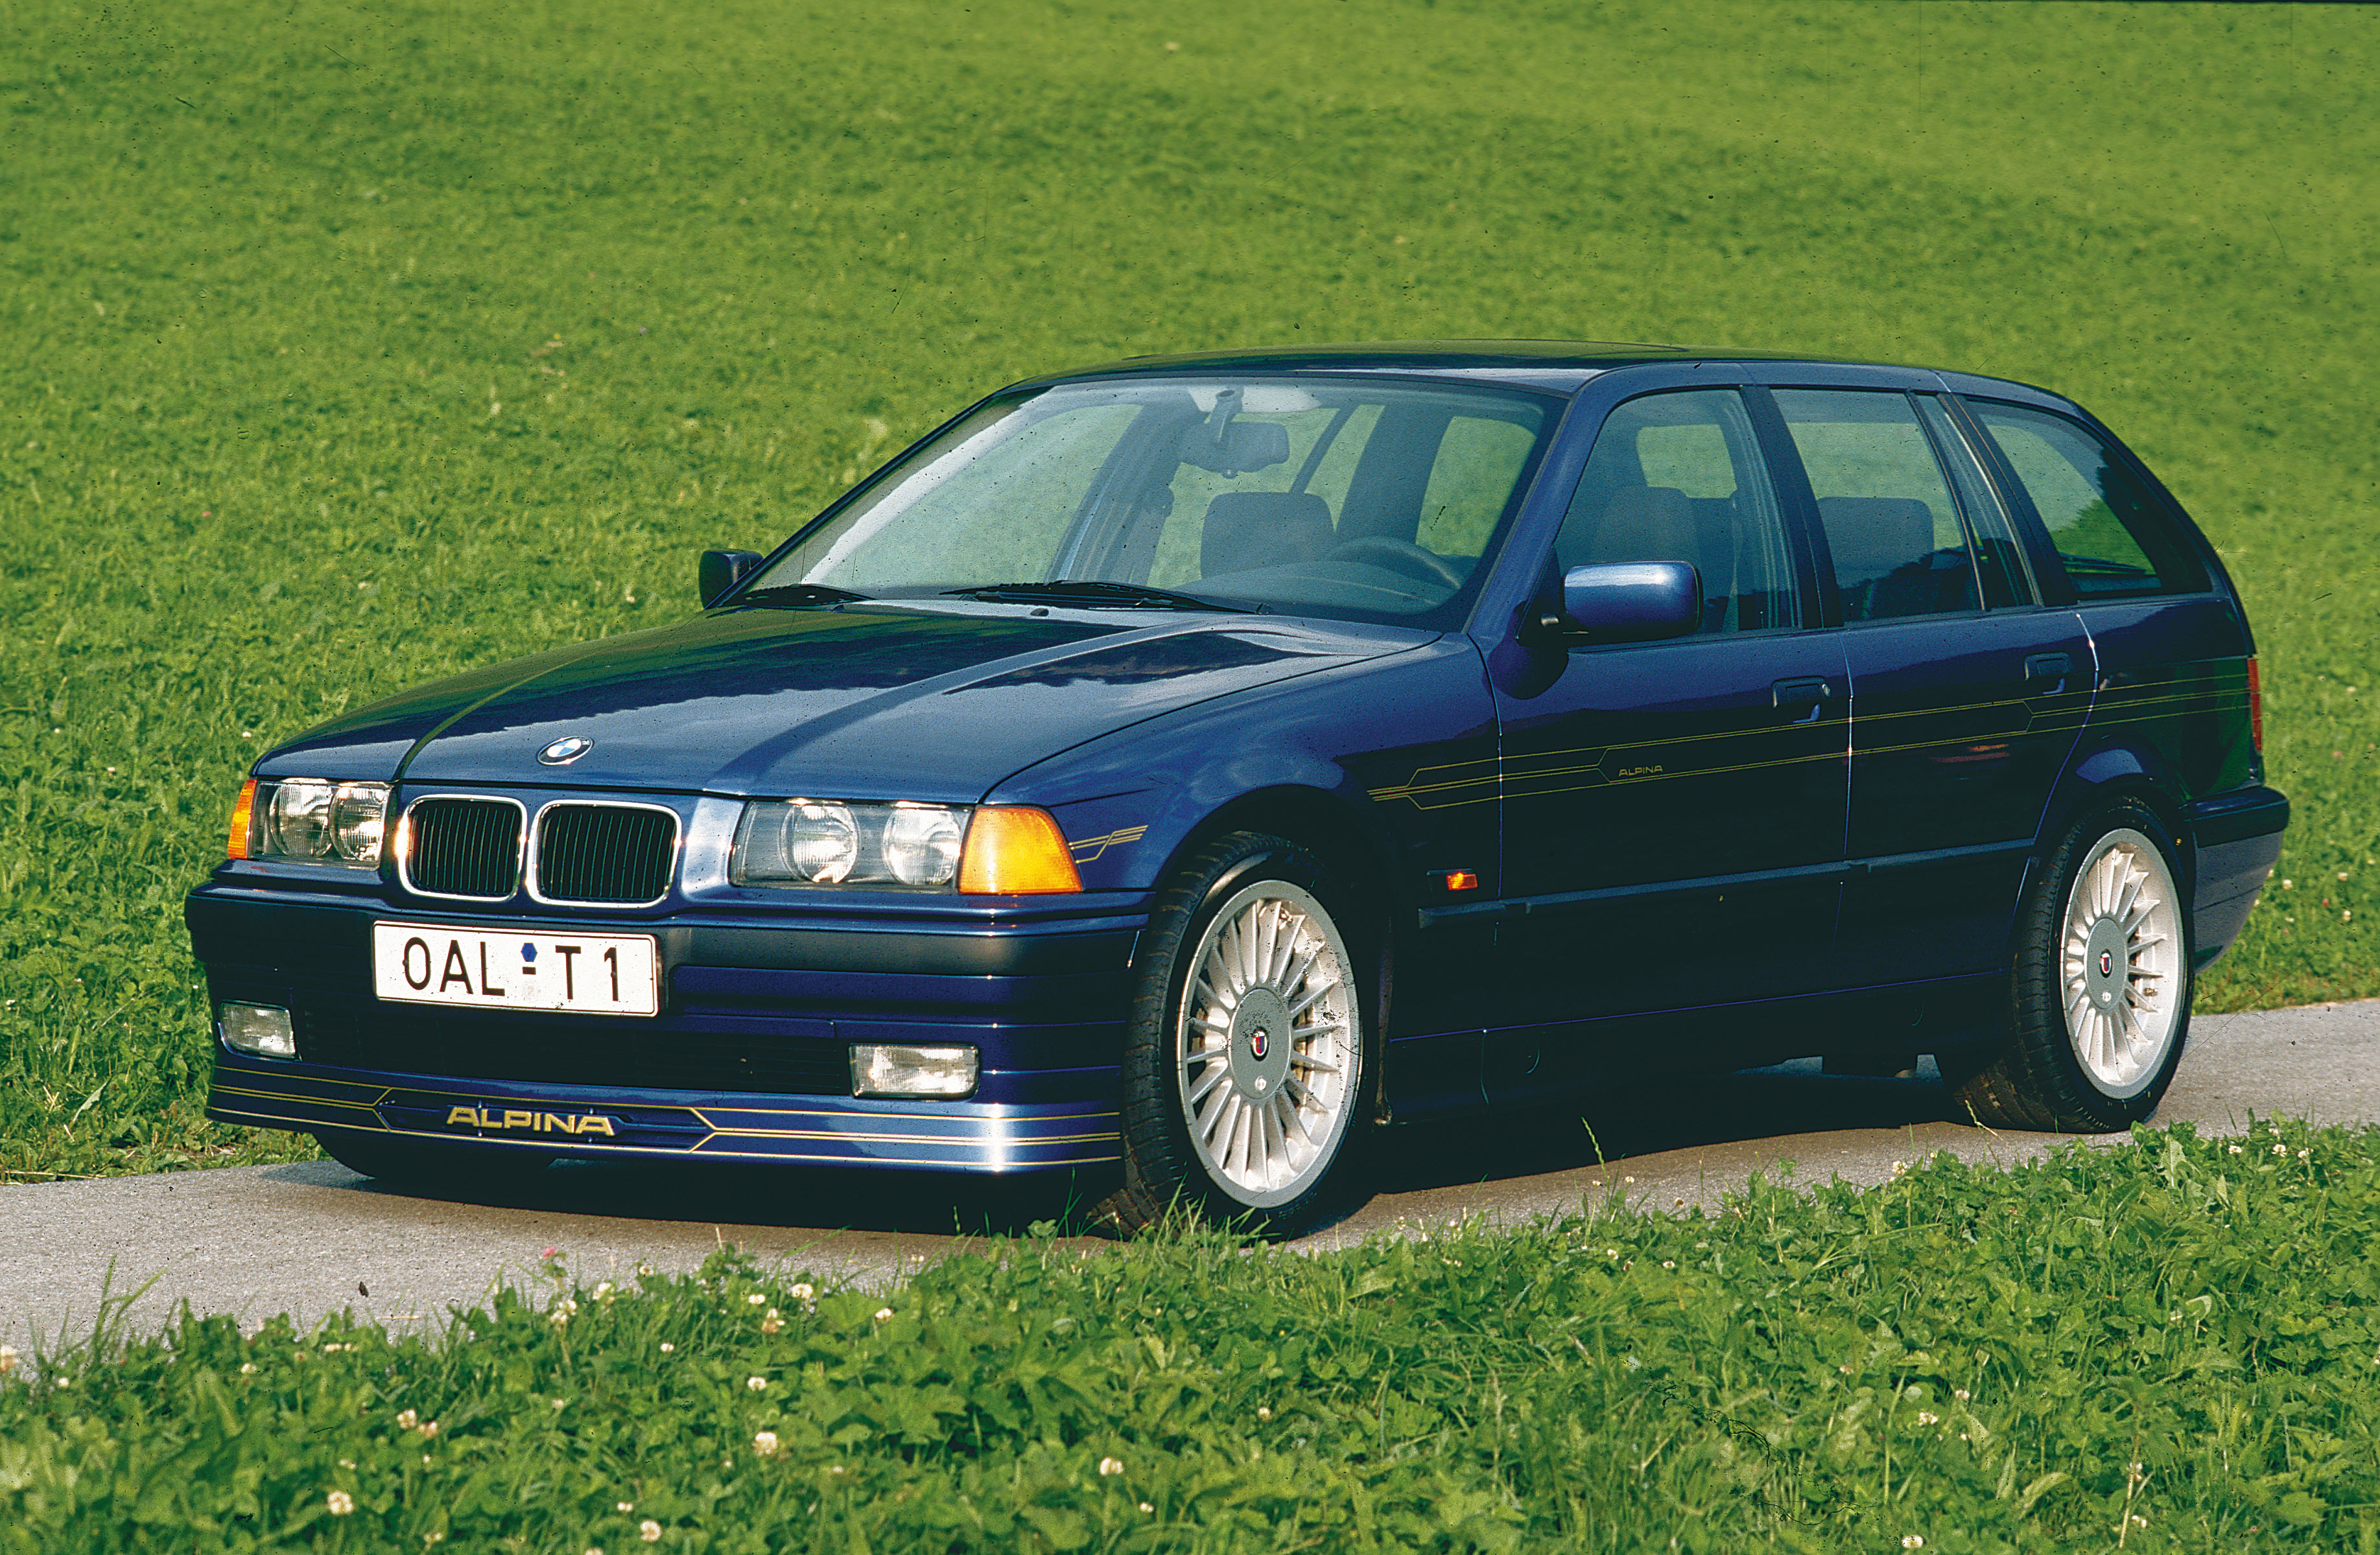 Alpina B3 E36 1993 1999 Cabriolet Outstanding Cars